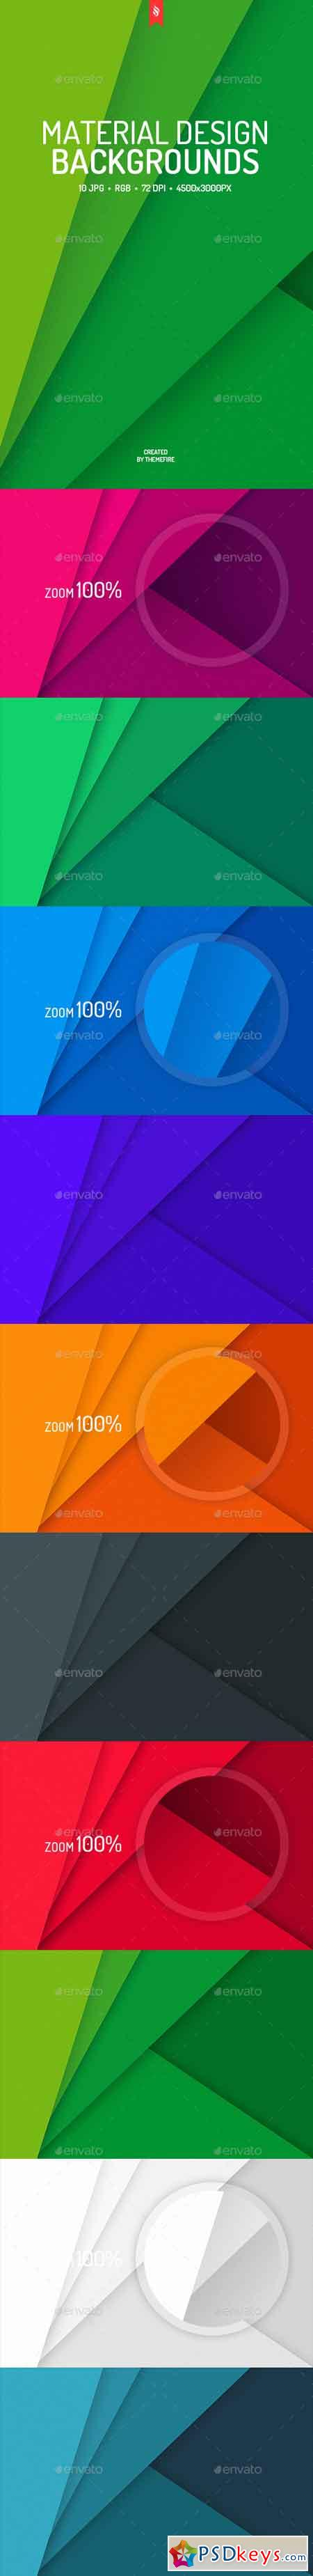 Flat Material Design Backgrounds 19214381